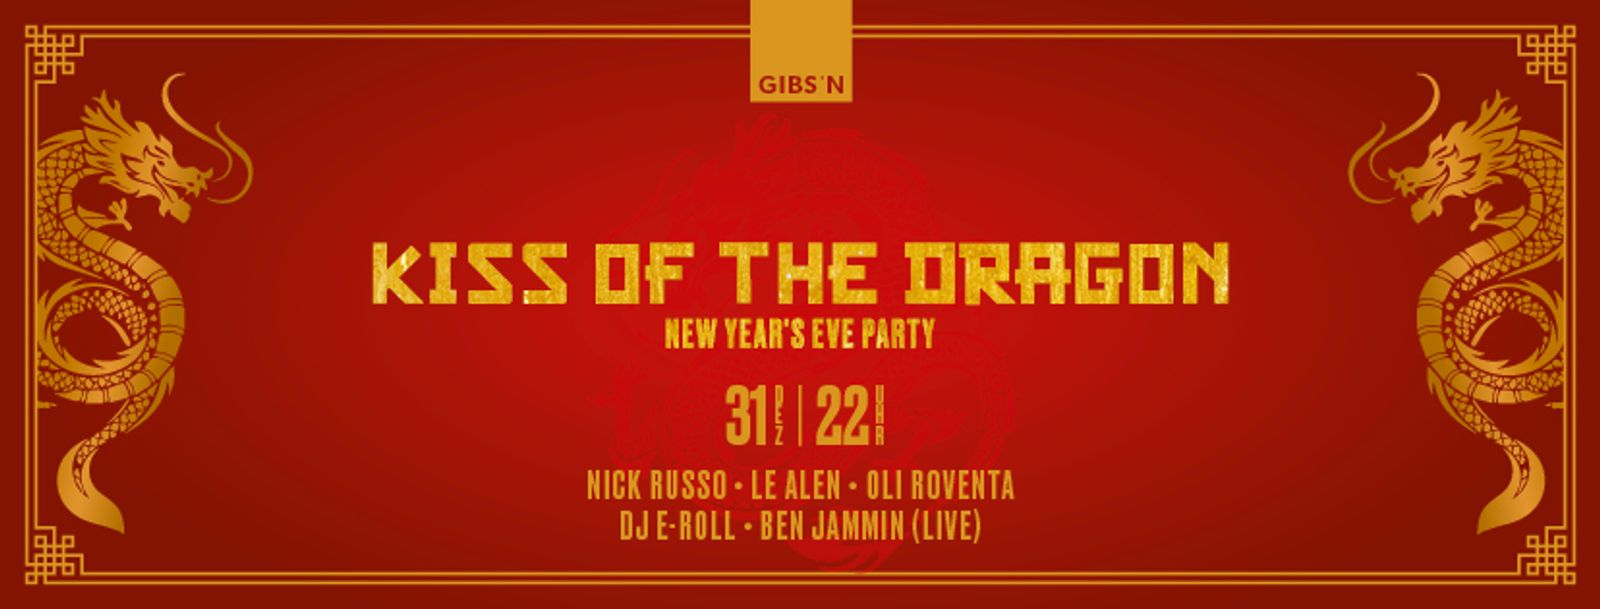 Kiss Of The Dragon - New Year's Eve | 31.12.